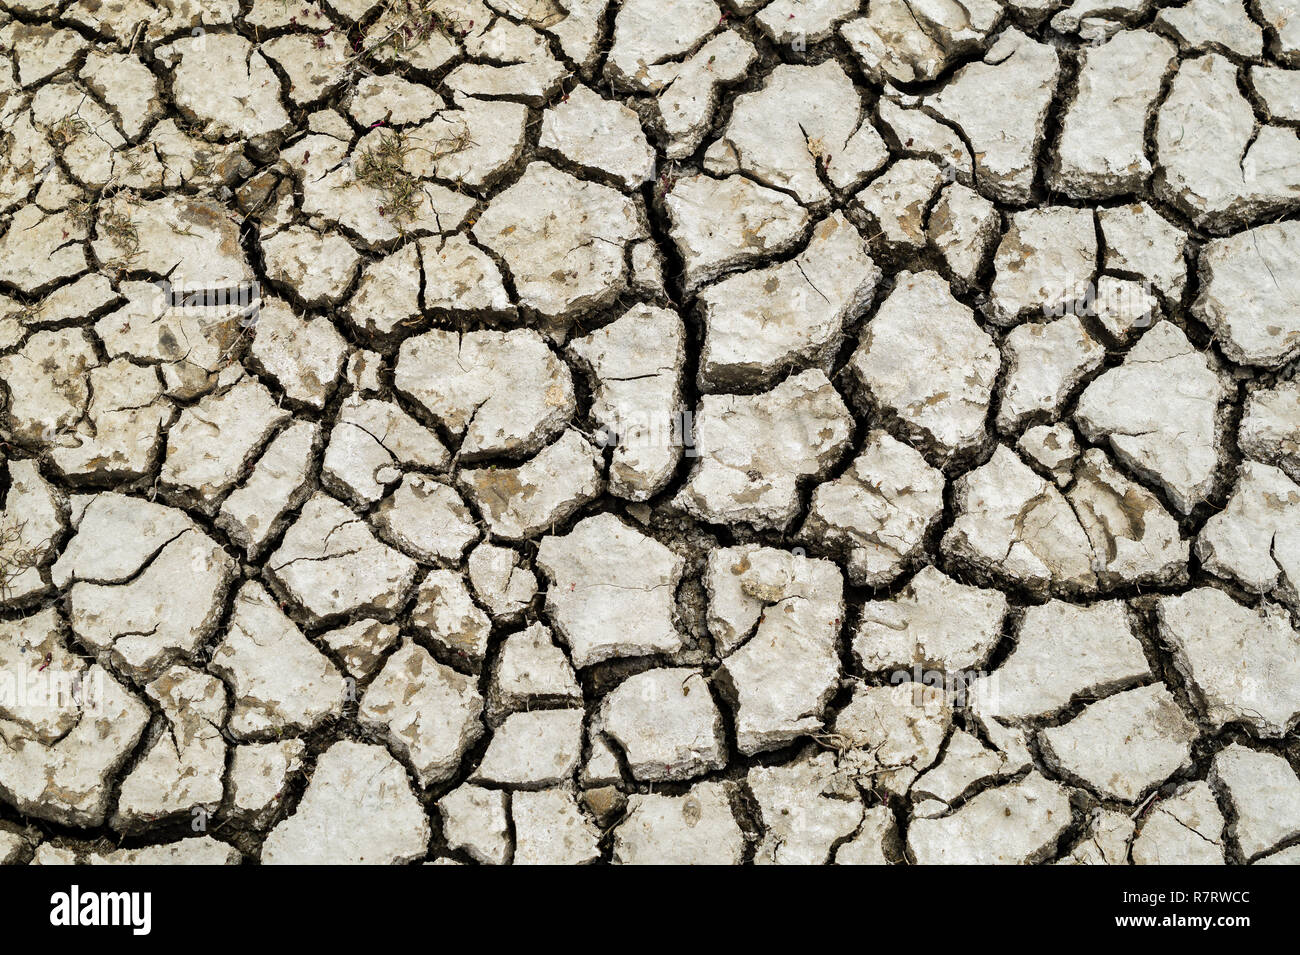 Drought climate change dryness in the soil - Stock Image